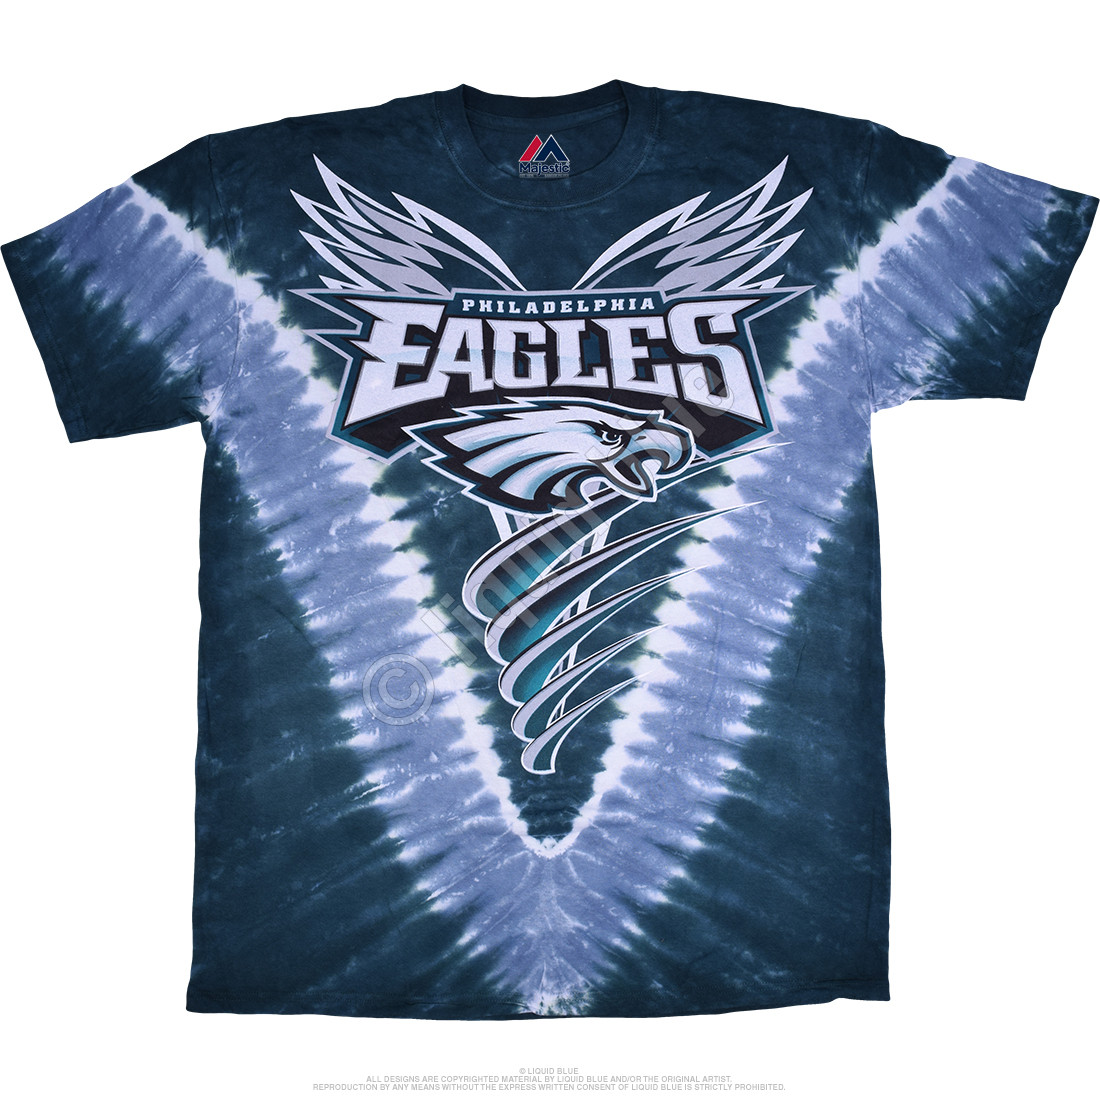 Philadelphia Eagles V Tie-Dye T-Shirt